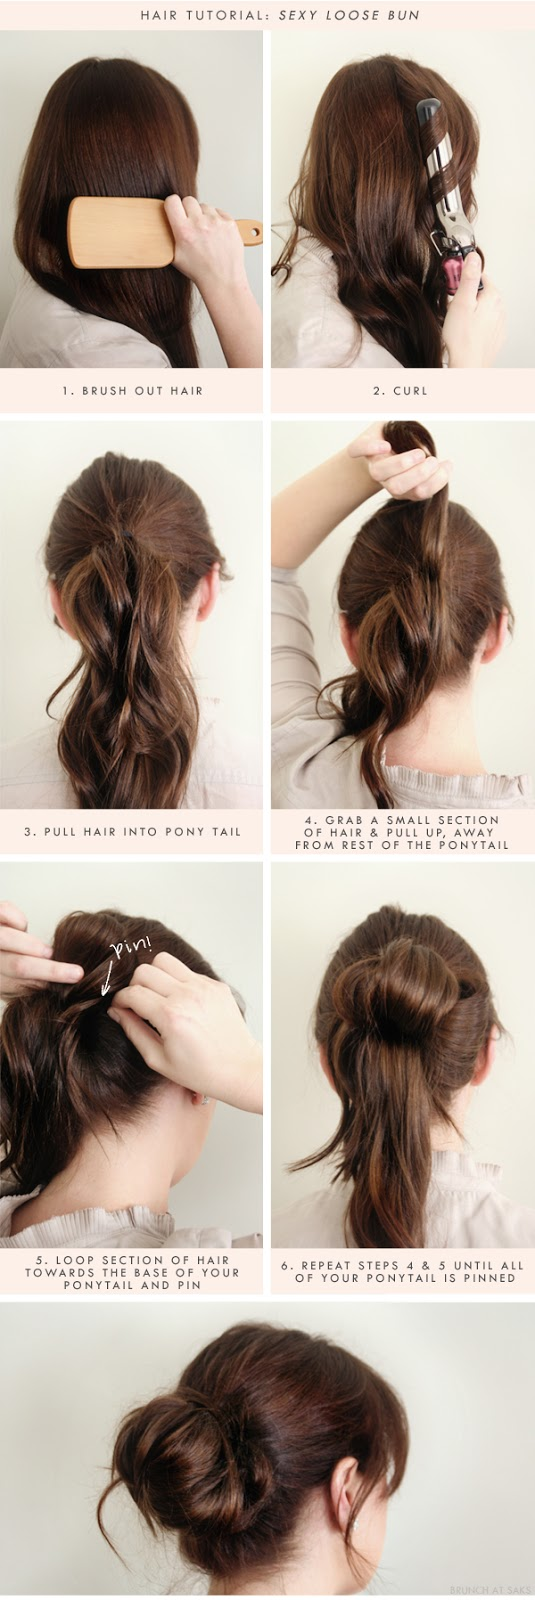 3 sexy loose bun hair tutorial